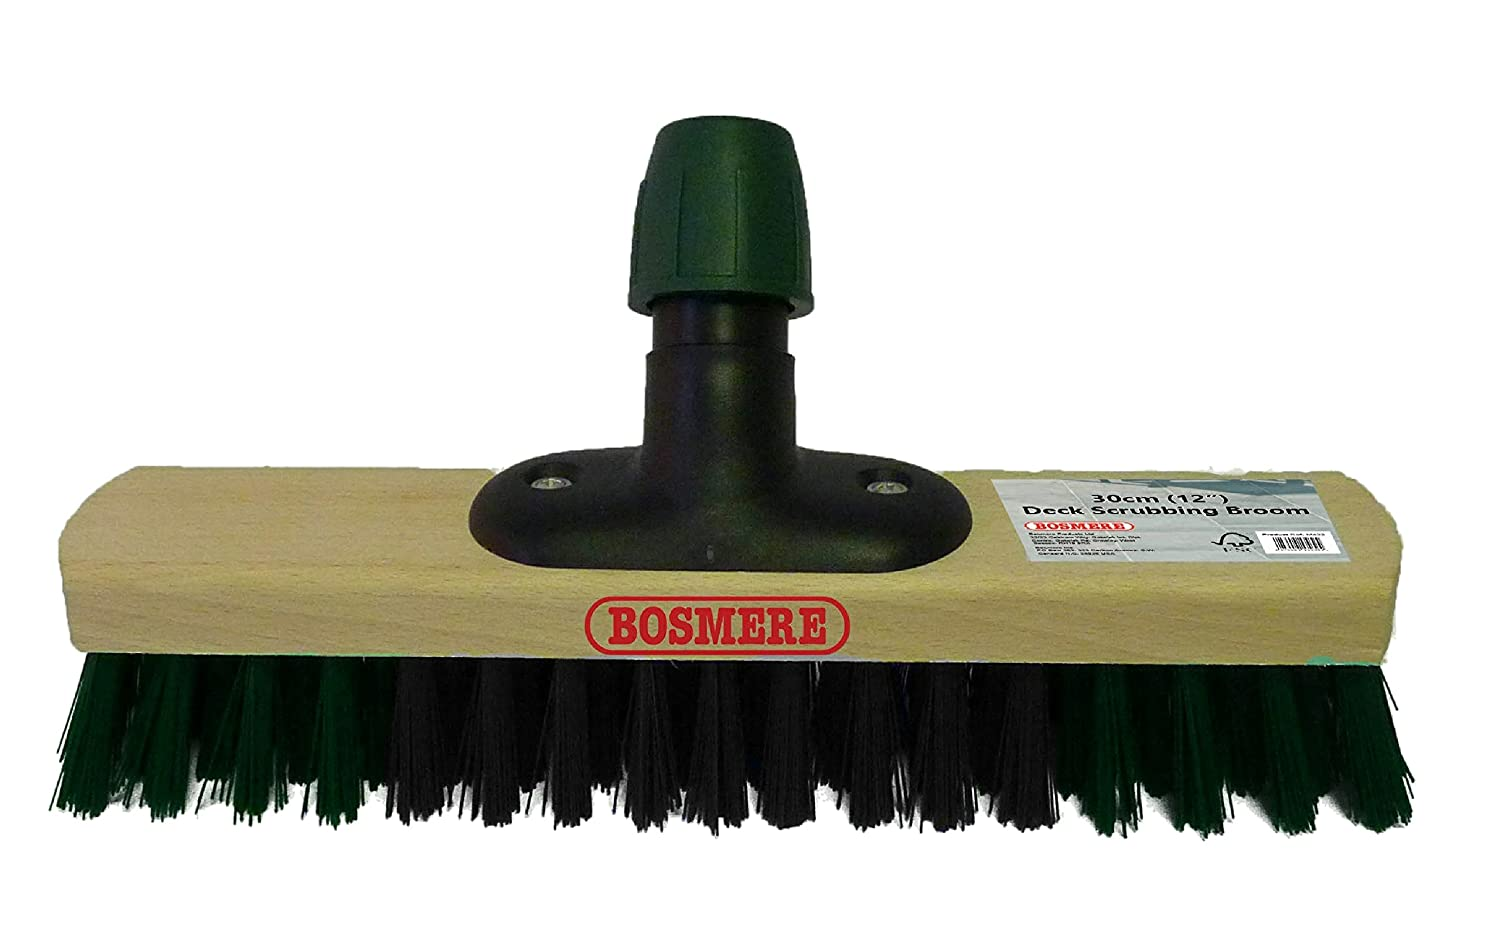 BOSMERE PRODUCTS M432 30 cm Deck Scrubbing Broom - Multi-Colour BOSMERE PRODUCTS LIMITED